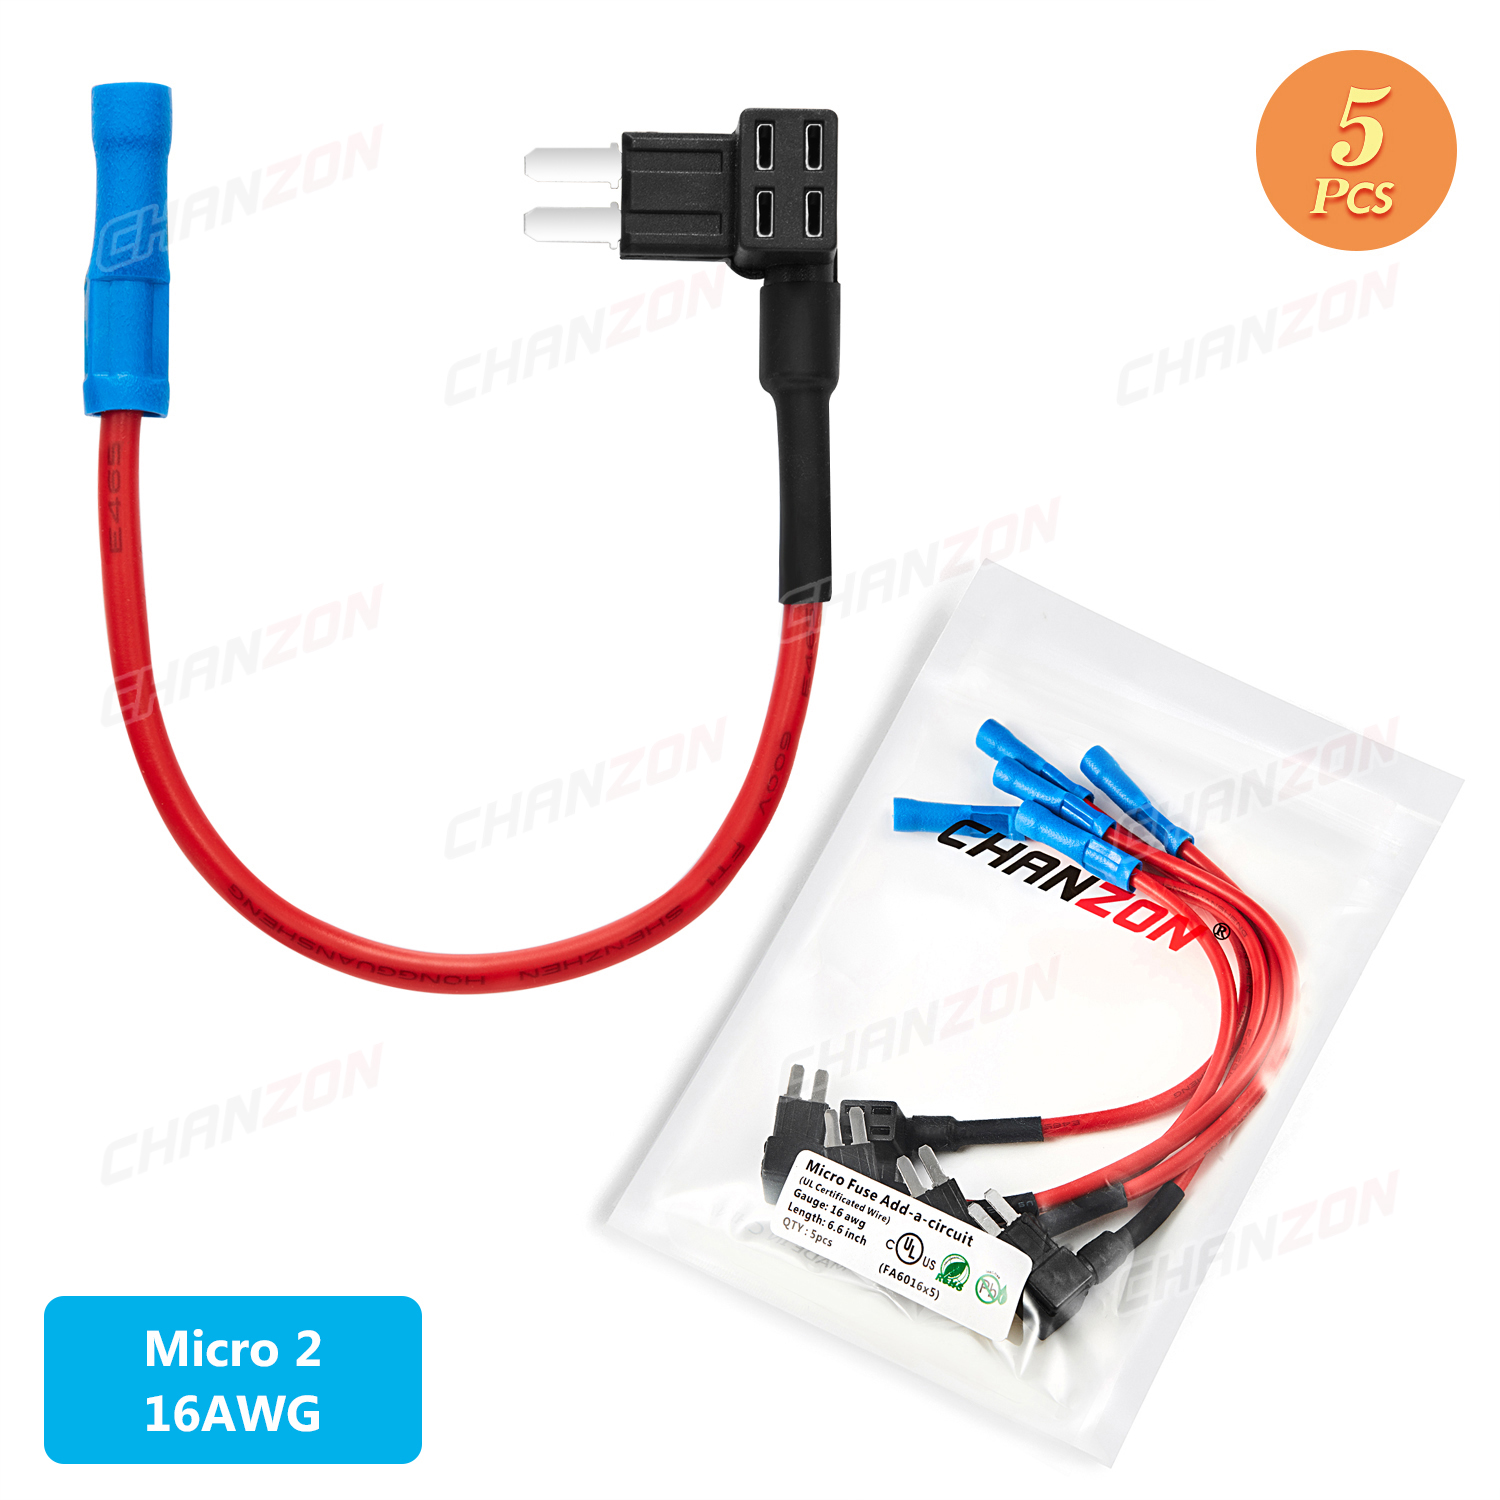 5pcs car auto fuse holder tap adapter atm micro 2 blade terminal motor  motorcycle case boxes 5v 12v 24v 32v 14 16 awg wire piggy|fuses| -  aliexpress  aliexpress